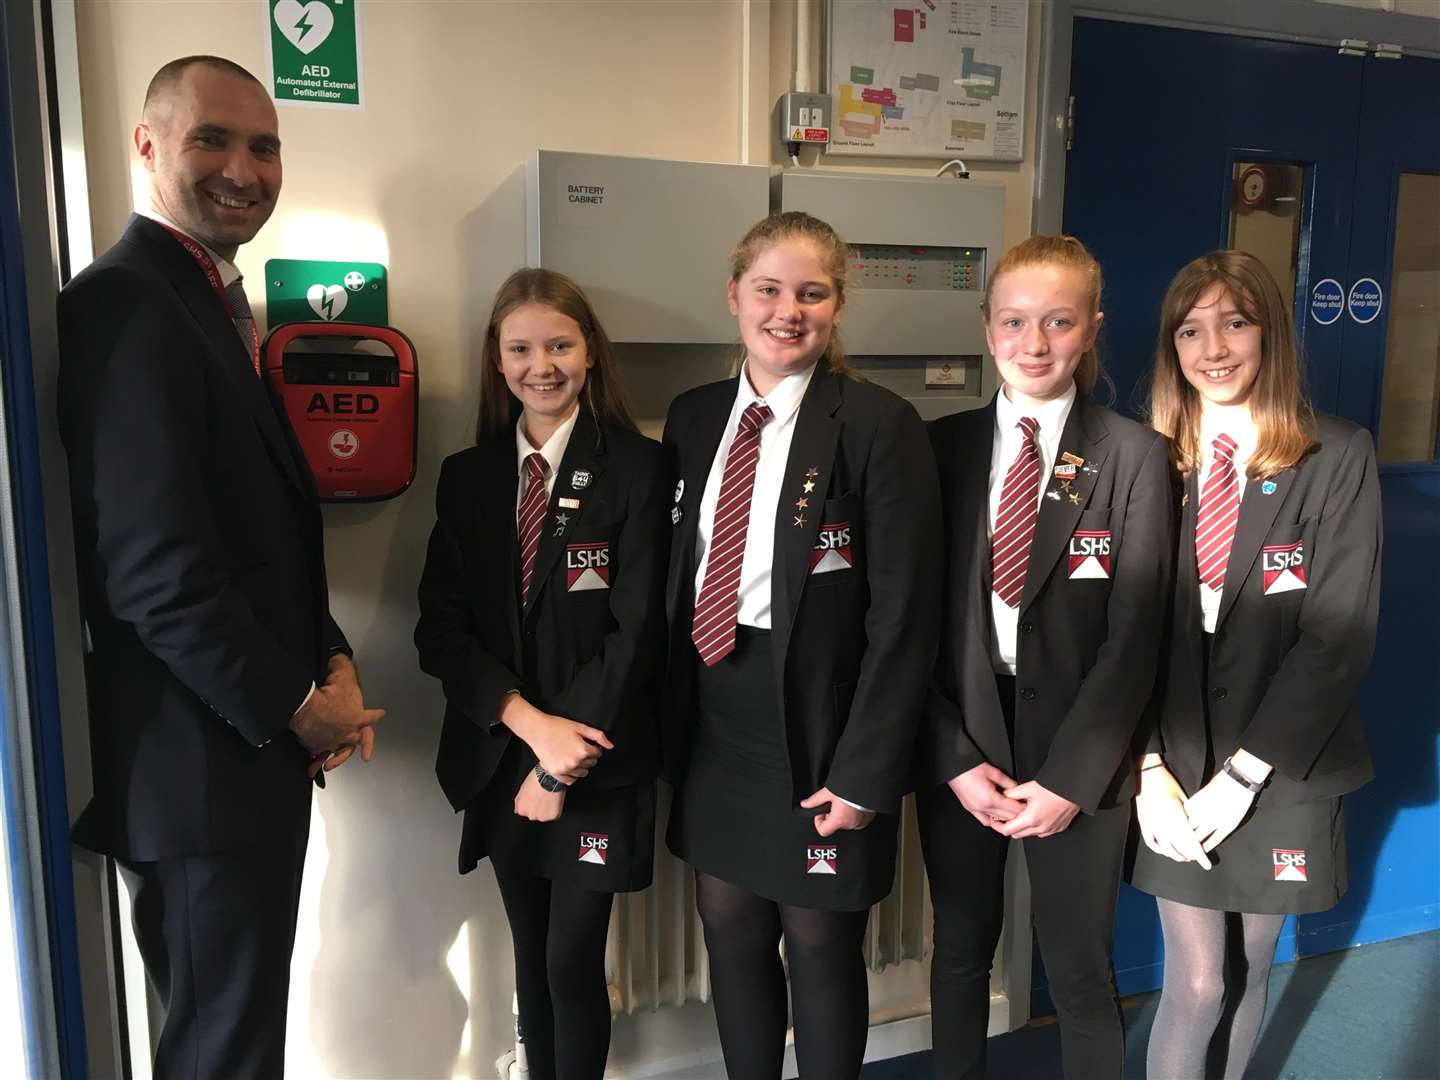 Bethany (far right) with her friends and headteacher Dr Roger Harris, celebrating the installation of the new defibrillator.